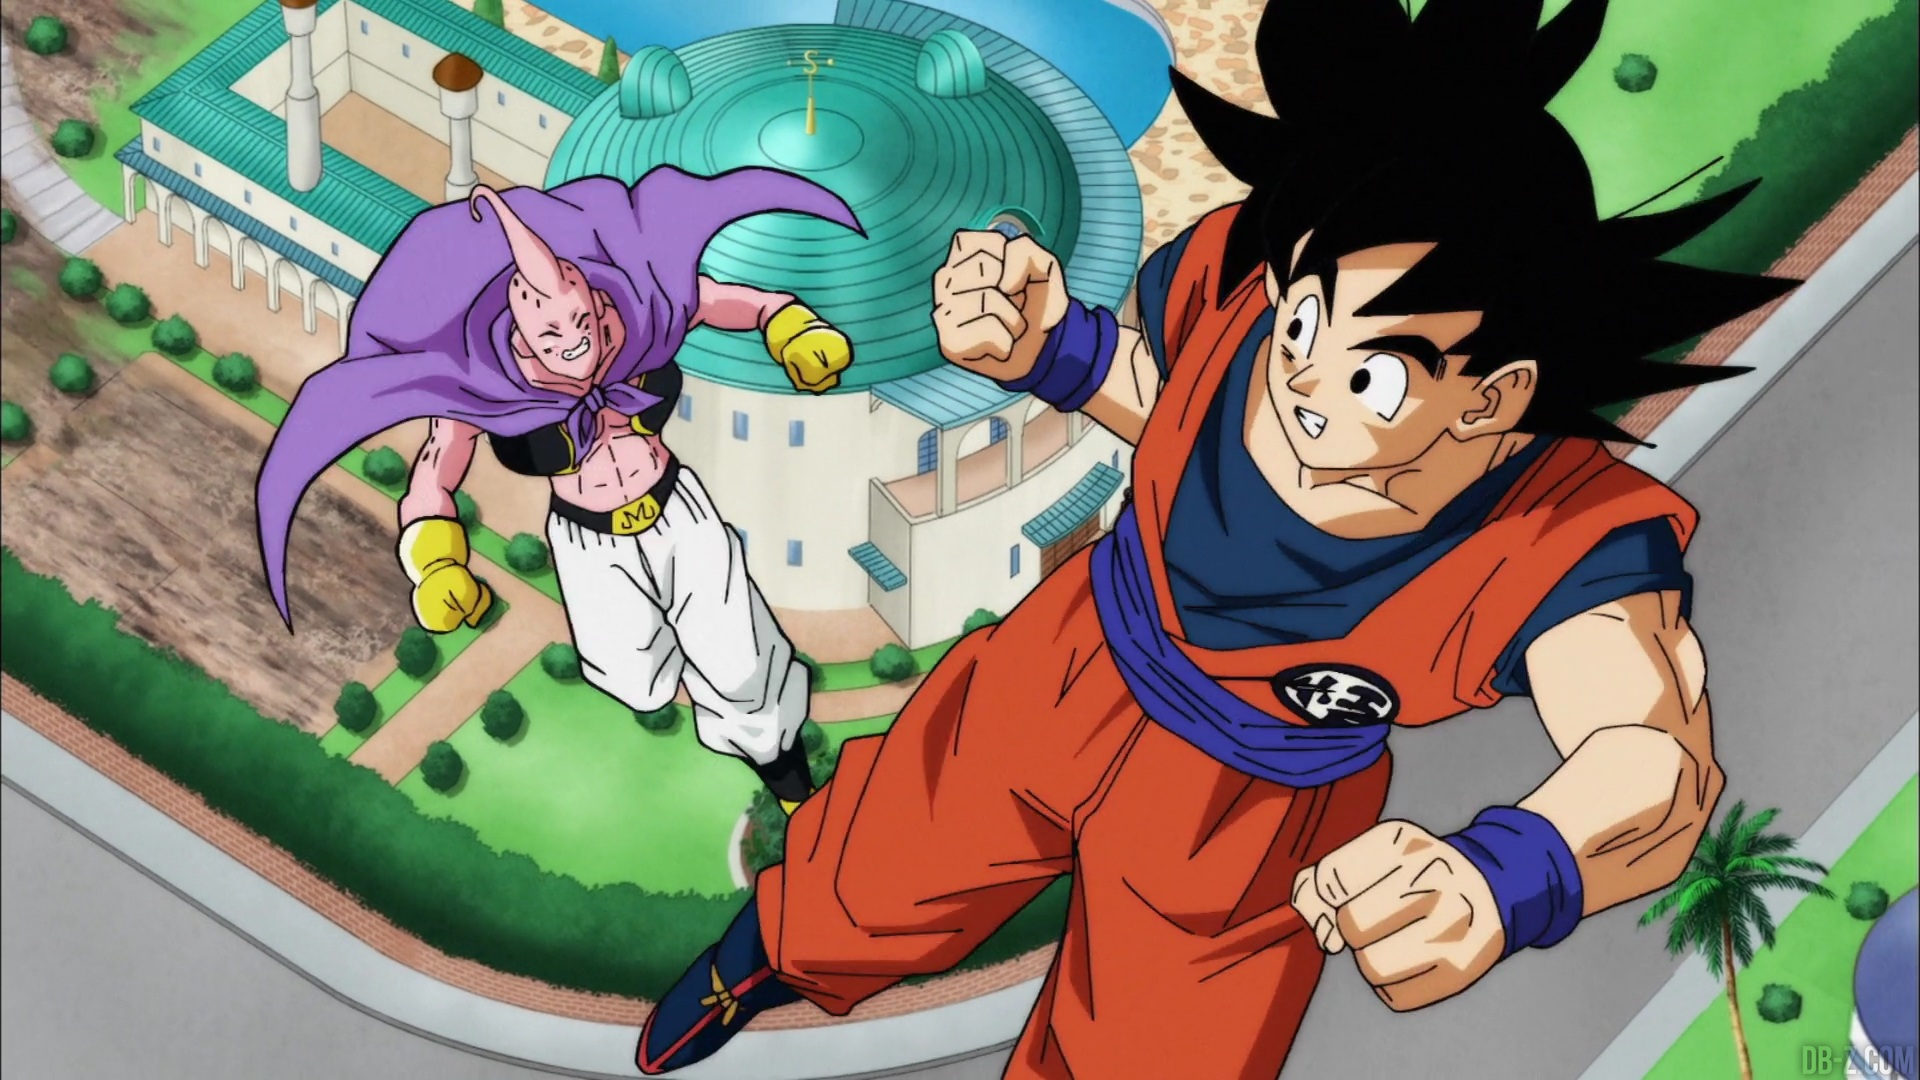 Análise Dragon Ball Super Episódio 85 Goku Vs Majin Boo Recanto